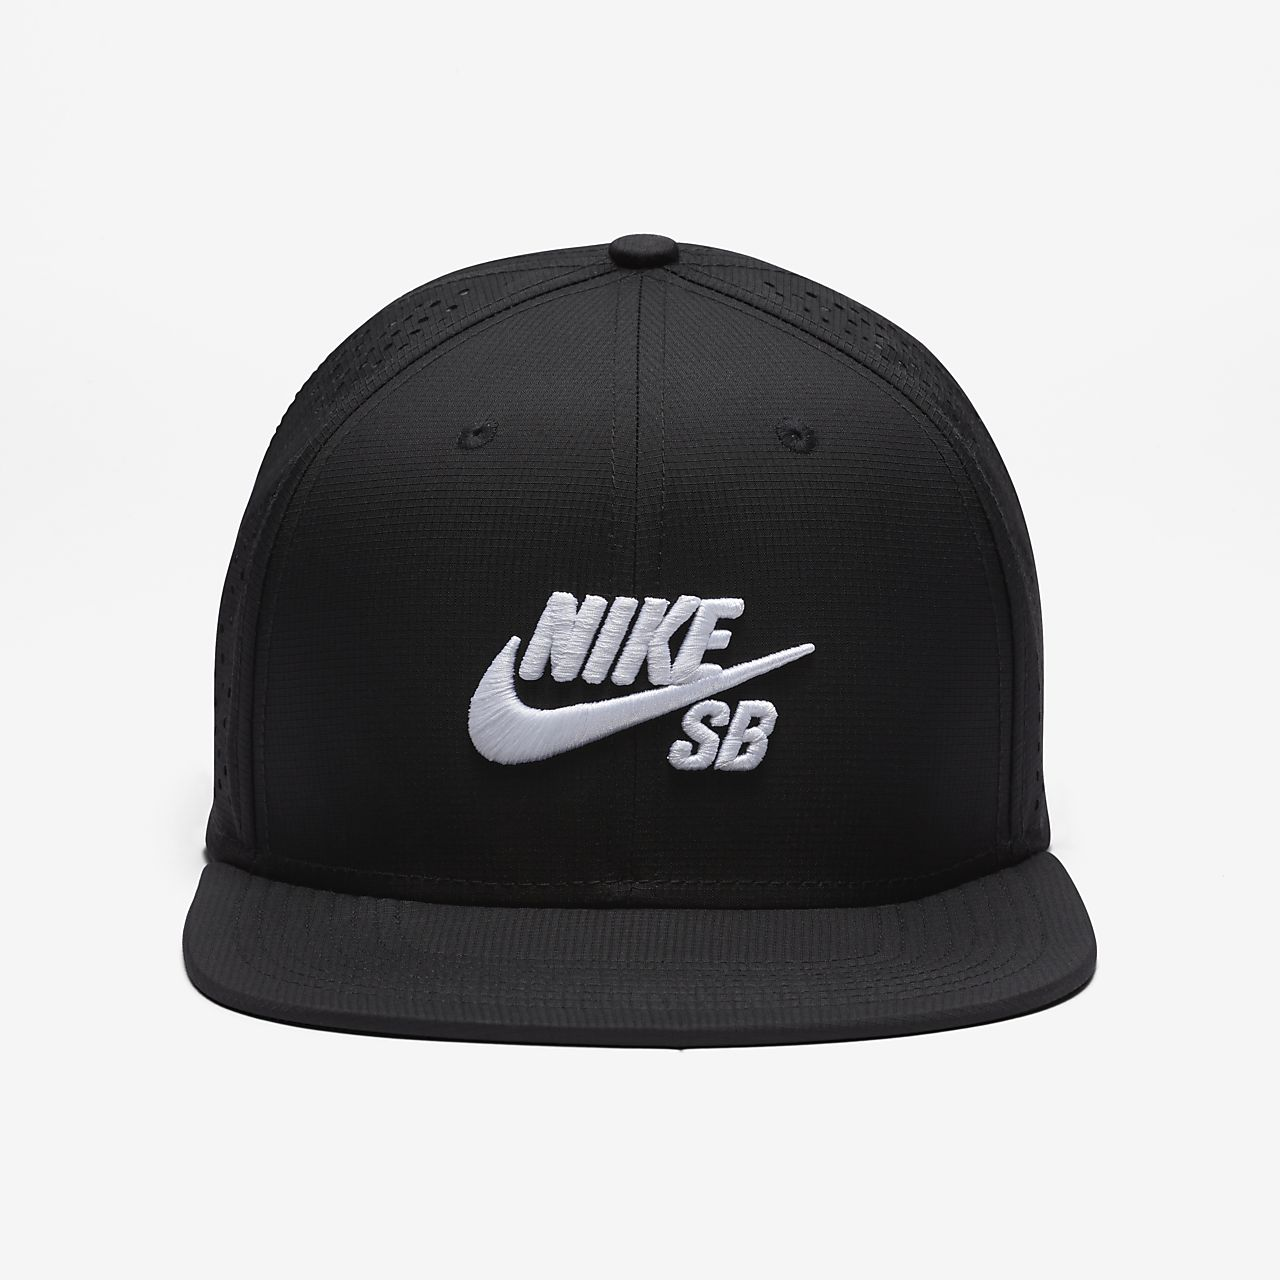 558921dc6c8 Nike SB Performance Trucker Hat. Nike.com